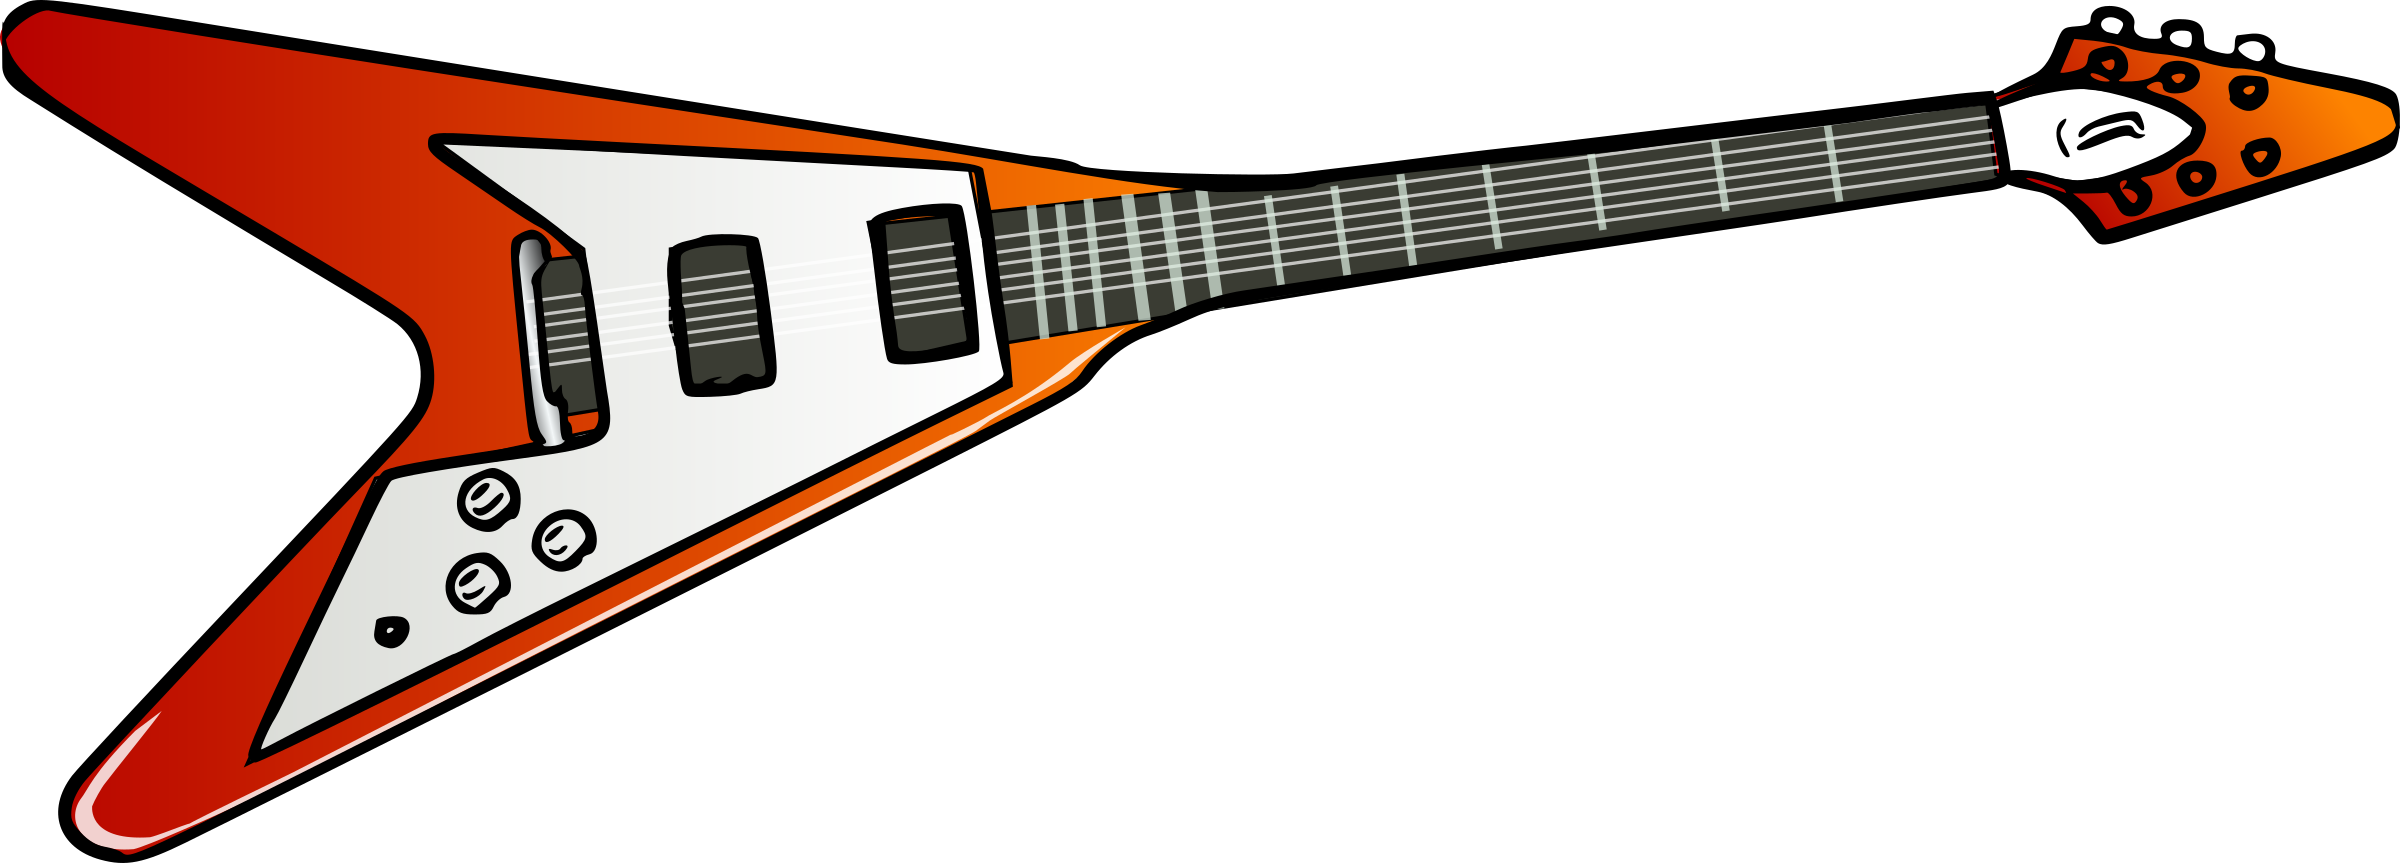 Flying V guitar by TheresaKnott